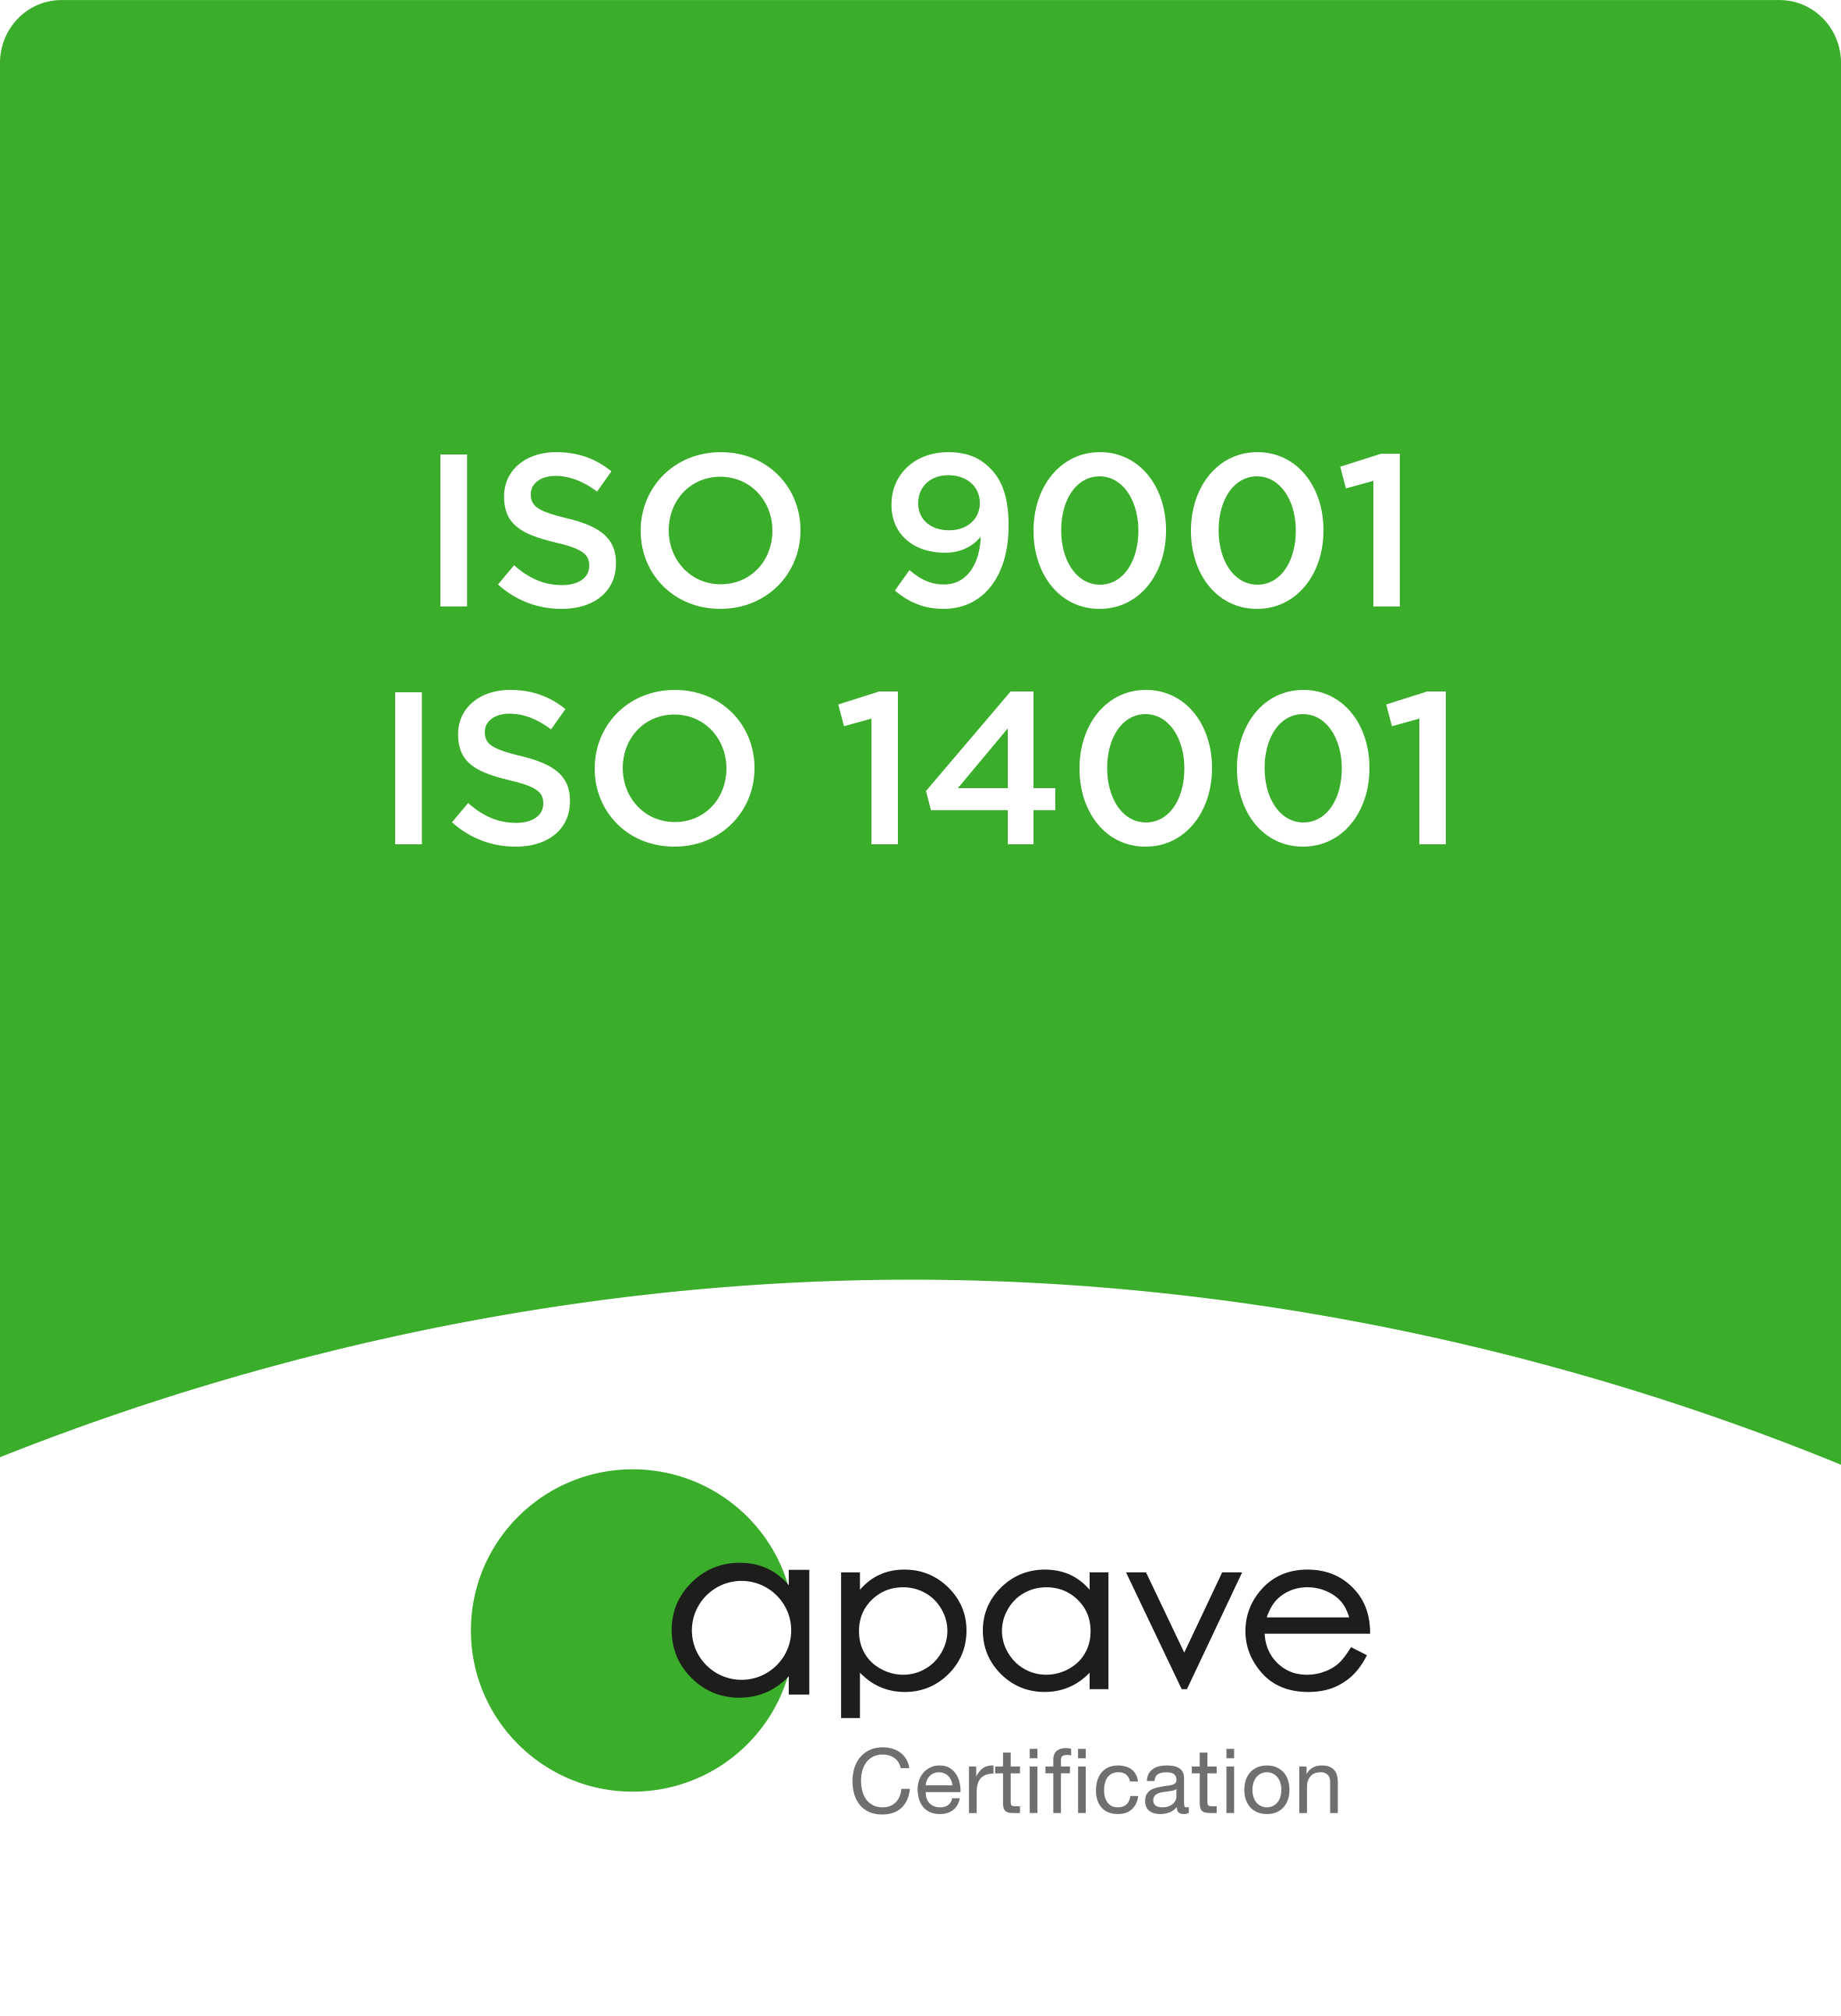 2 ISO 9001 and ISO 14001.jpg